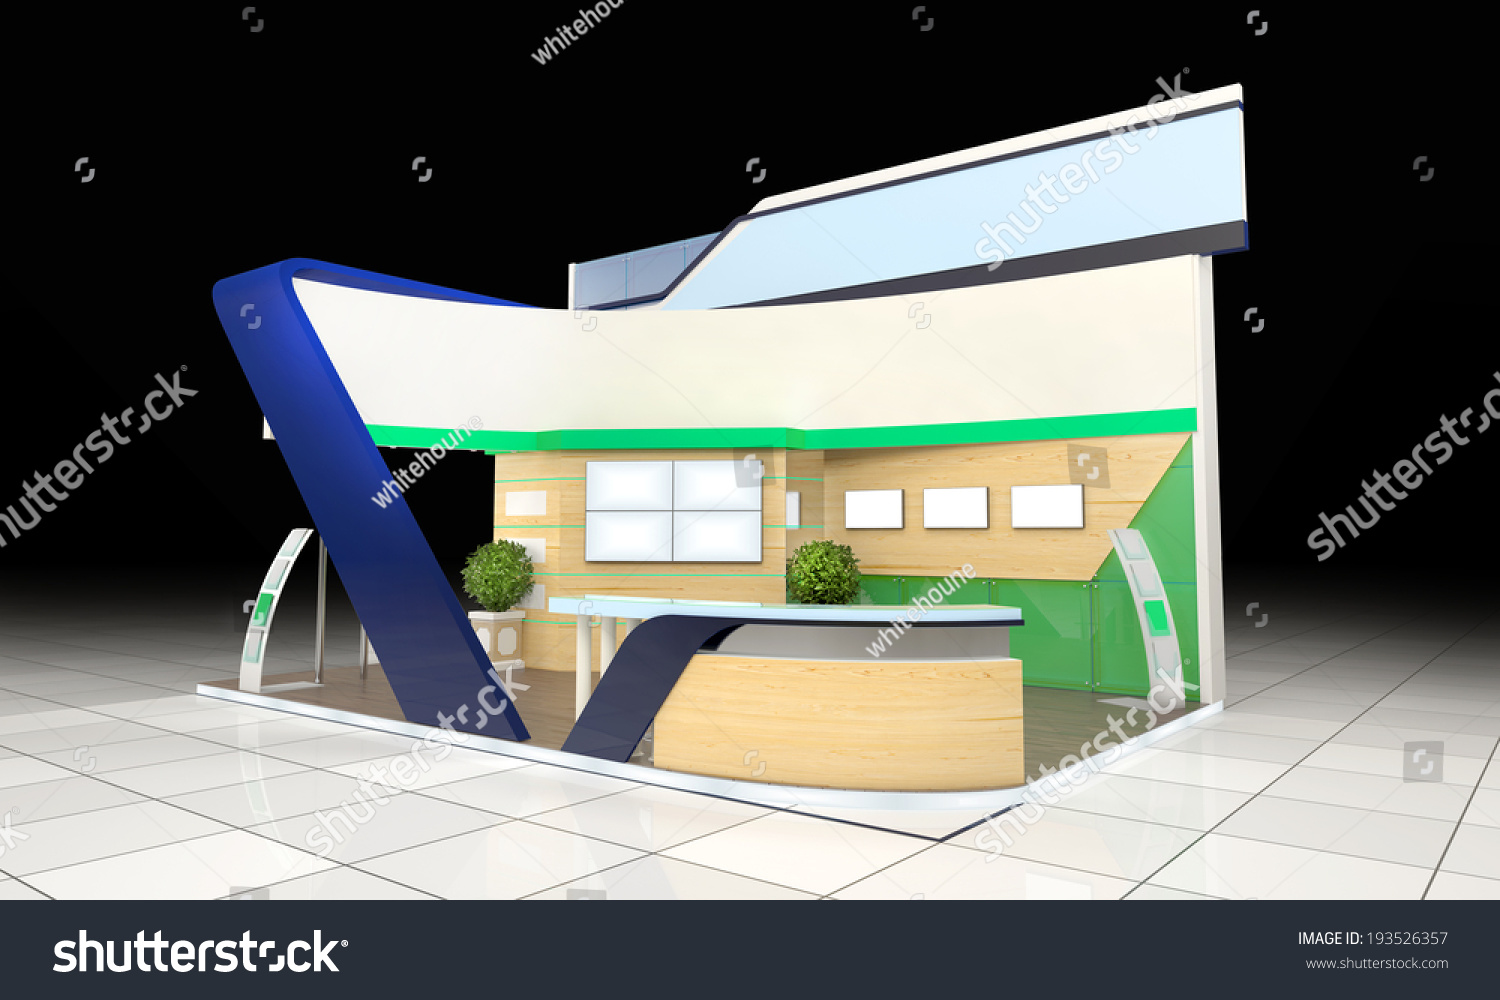 Modern Exhibition Stand Near Me : Modern business exhibition stand design blank stock illustration